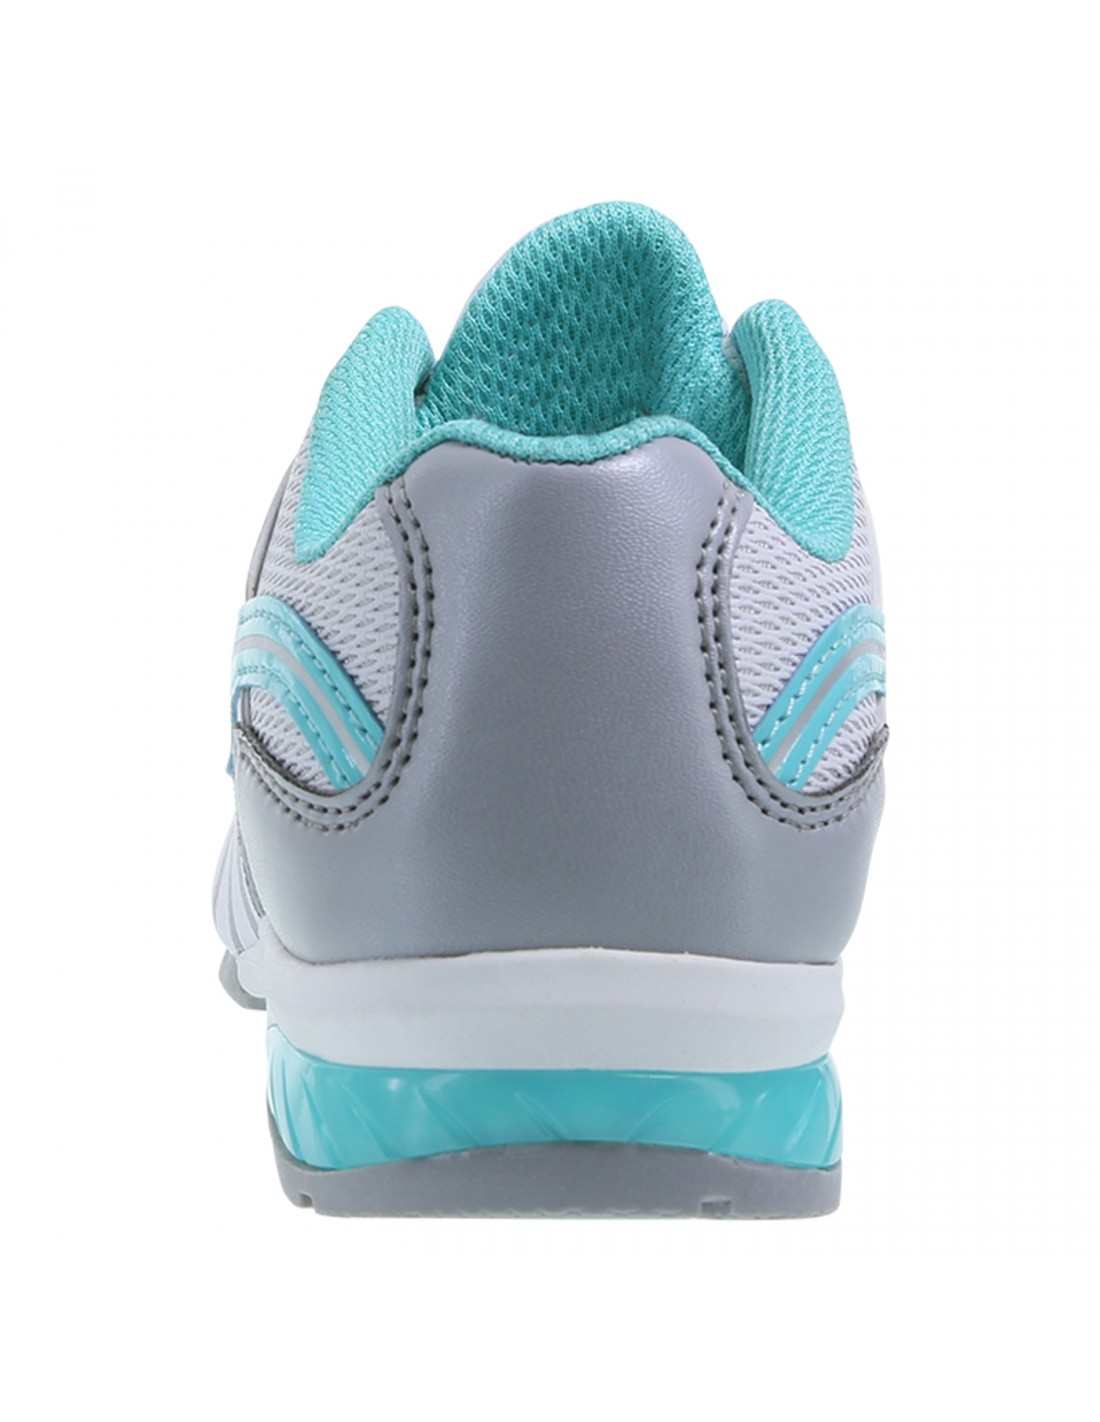 Nike EFREE 6.0 Chica